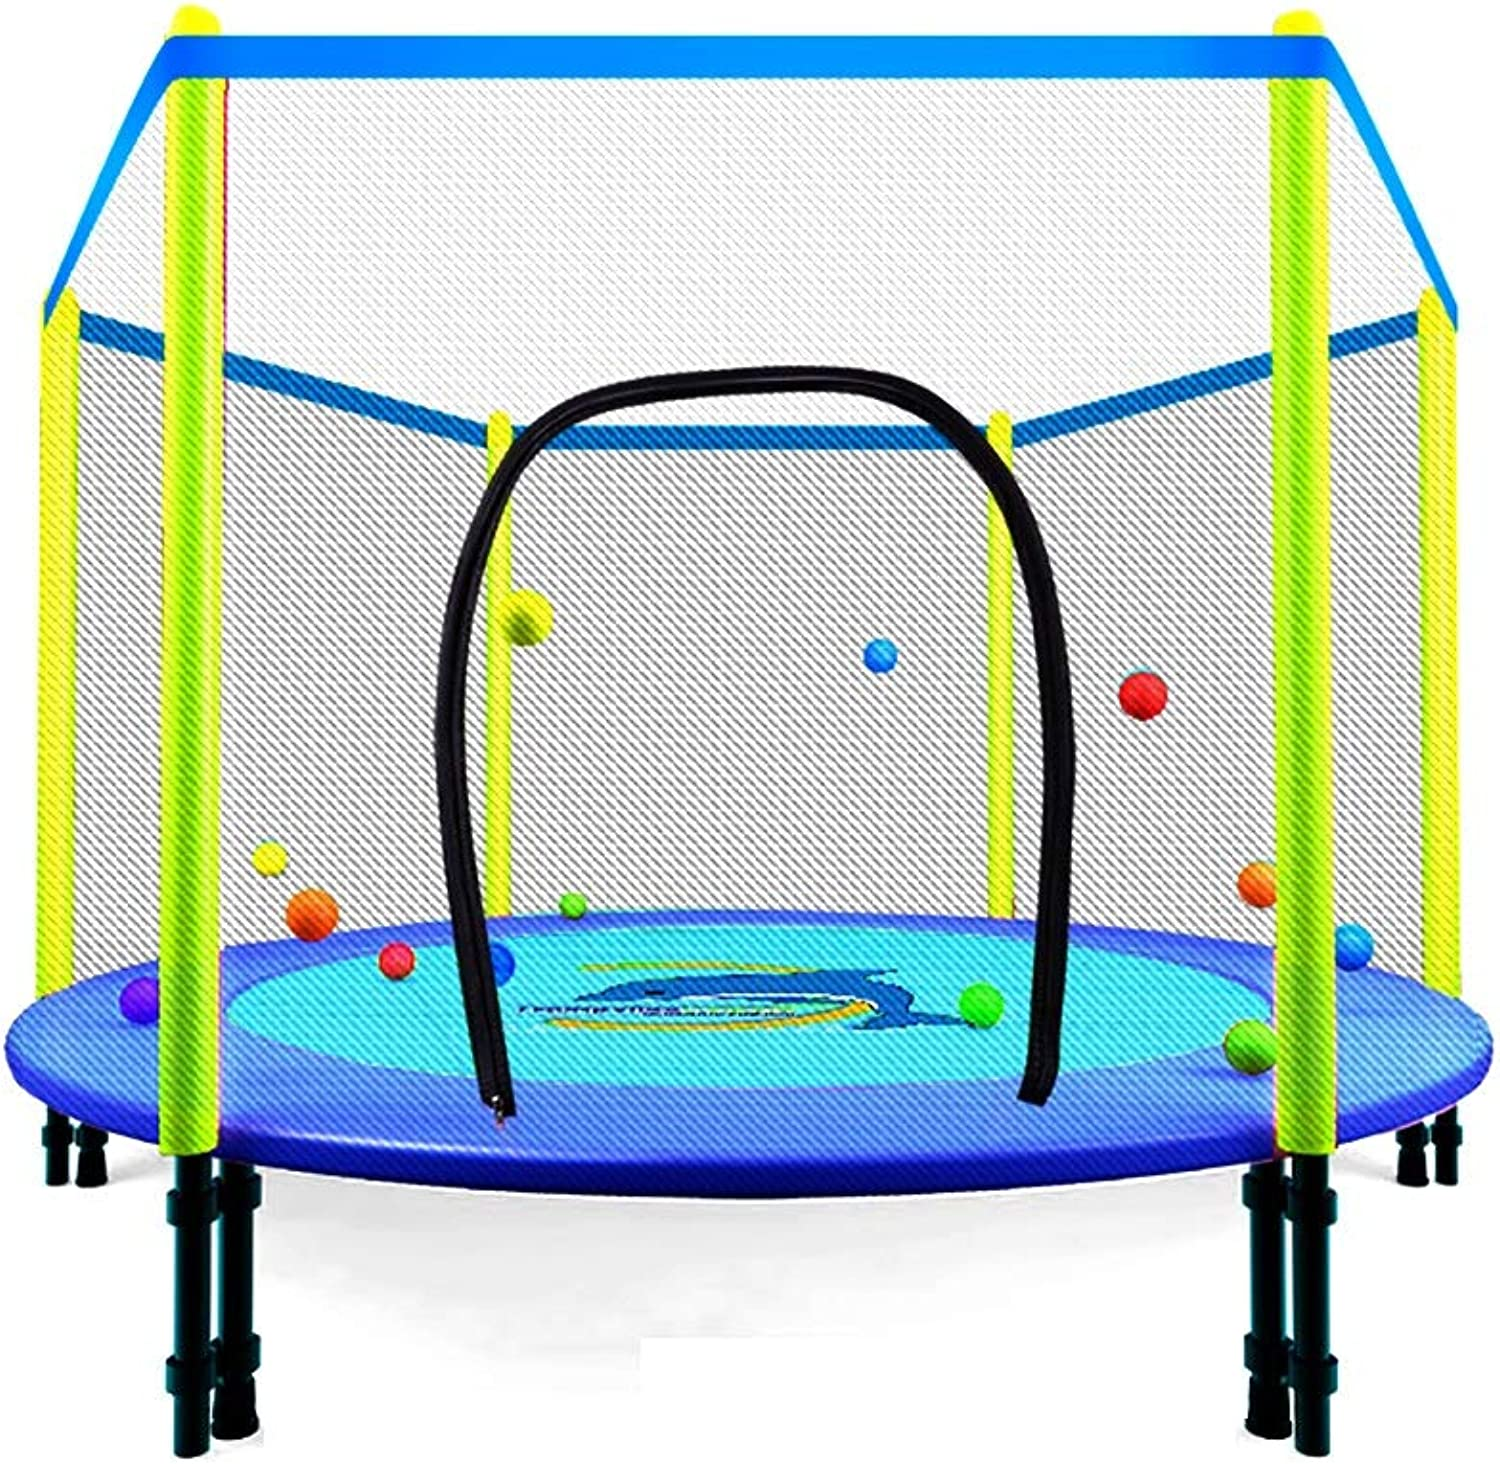 ZCJB 48'' Trampoline Combo Bounce Jump Outdoor Trampoline for Family School Entertainment W Safety Enclosure Net